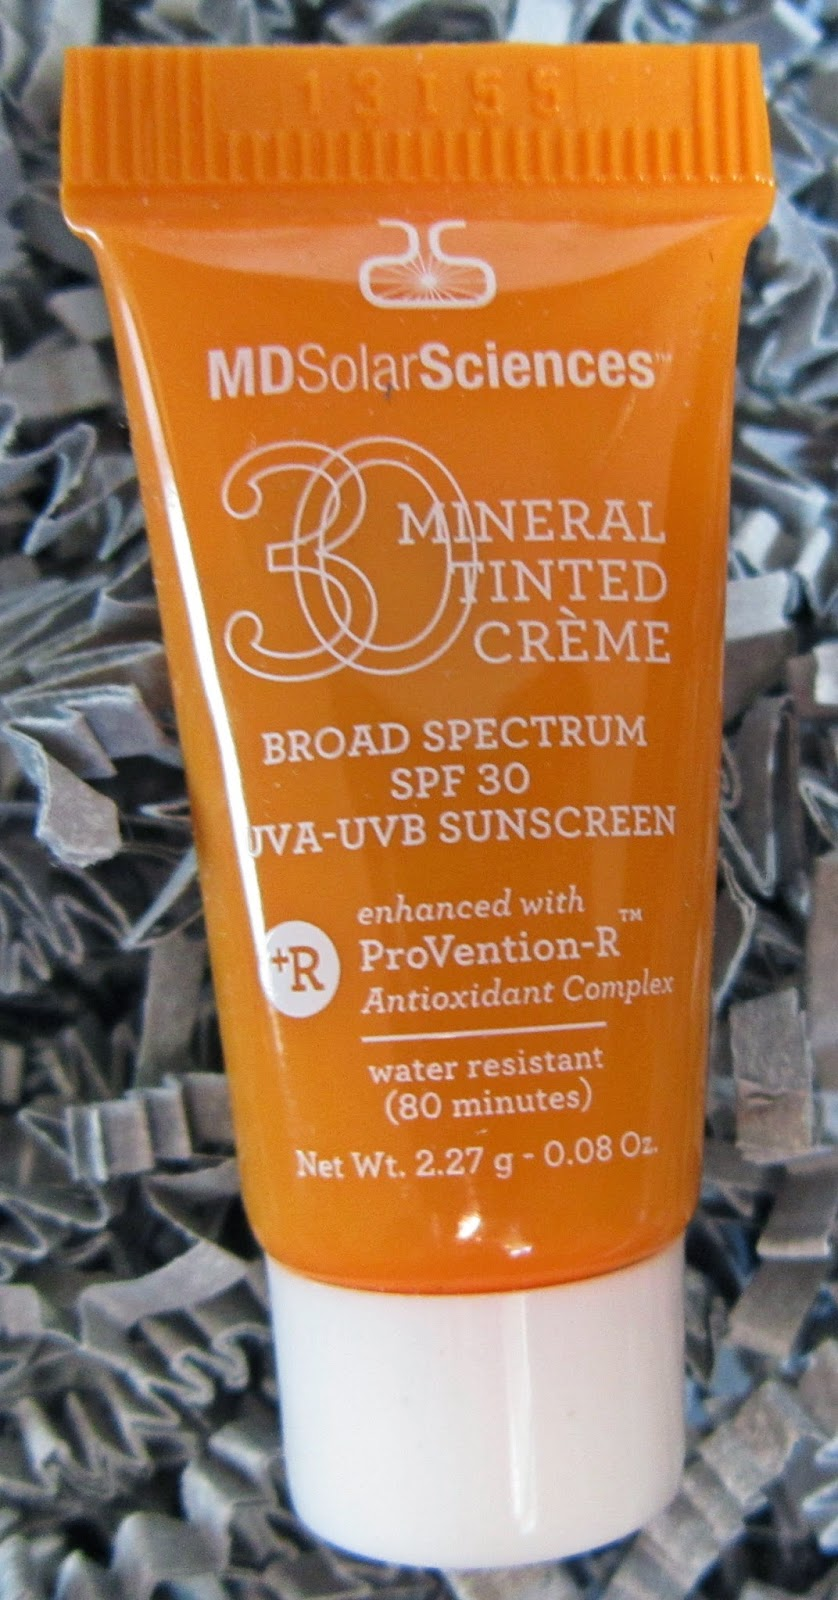 MD SolarSciences SPF 30 Mineral Tinted Creme Mini,